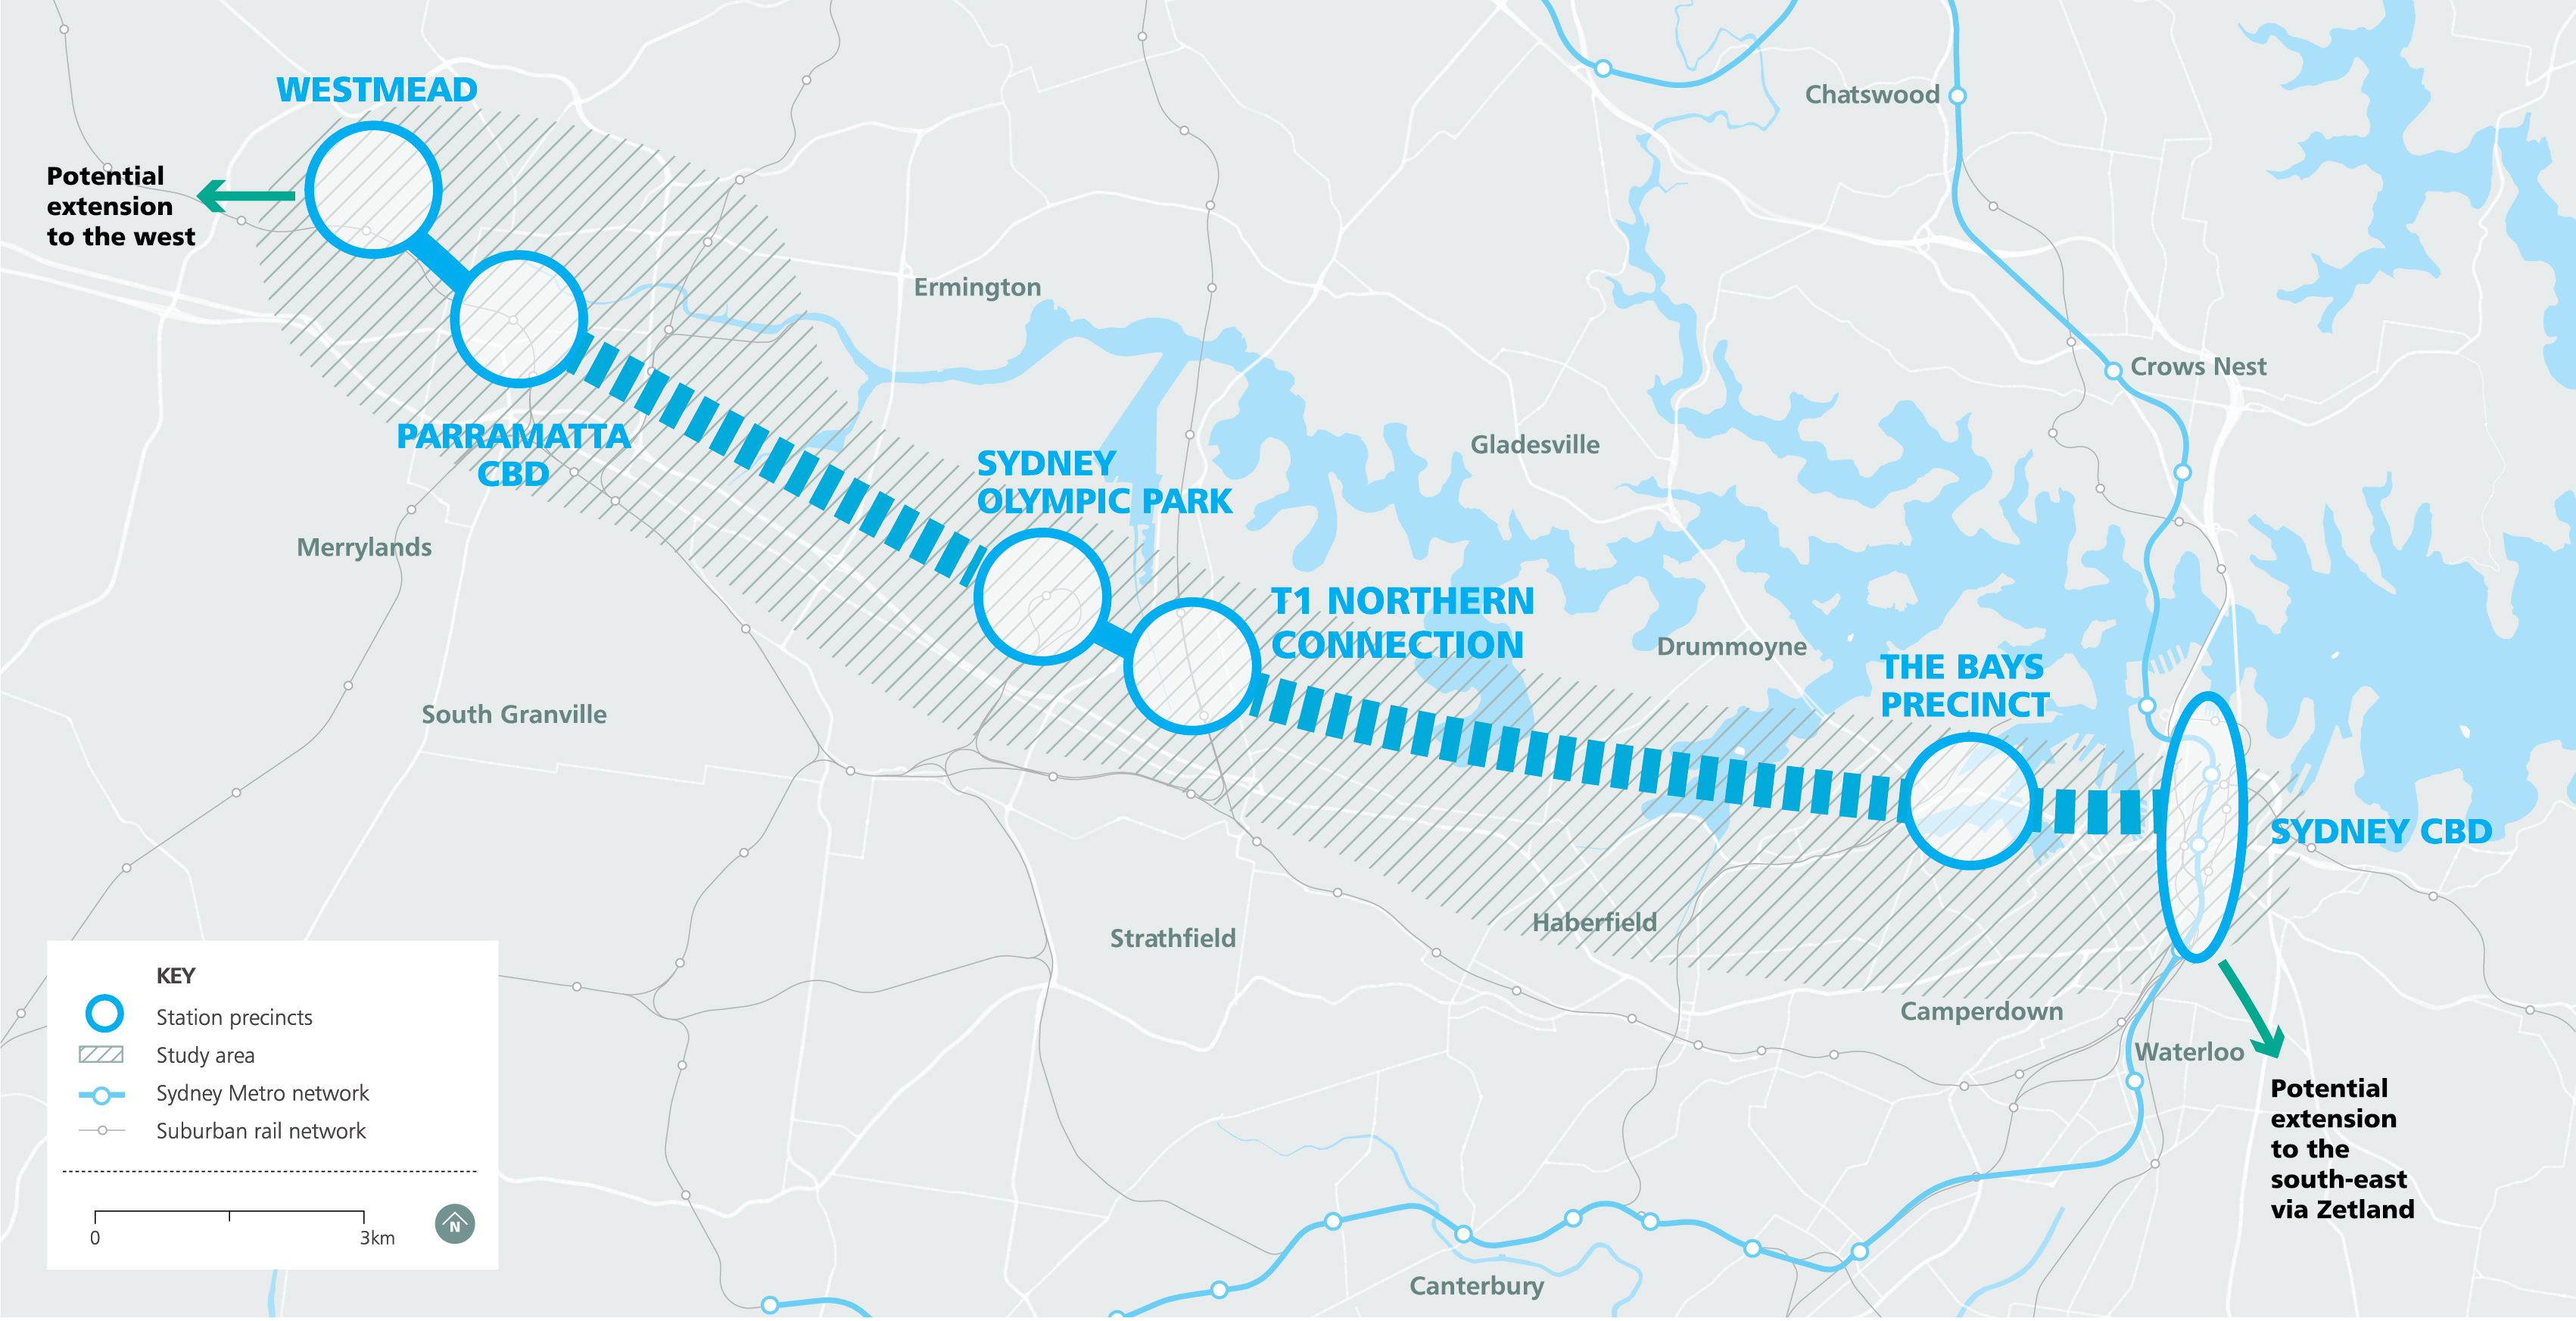 Sydney Metro West will service the key precincts of Greater Parramatta, Sydney Olympic Park, The Bays Precinct and the Sydney CBD.